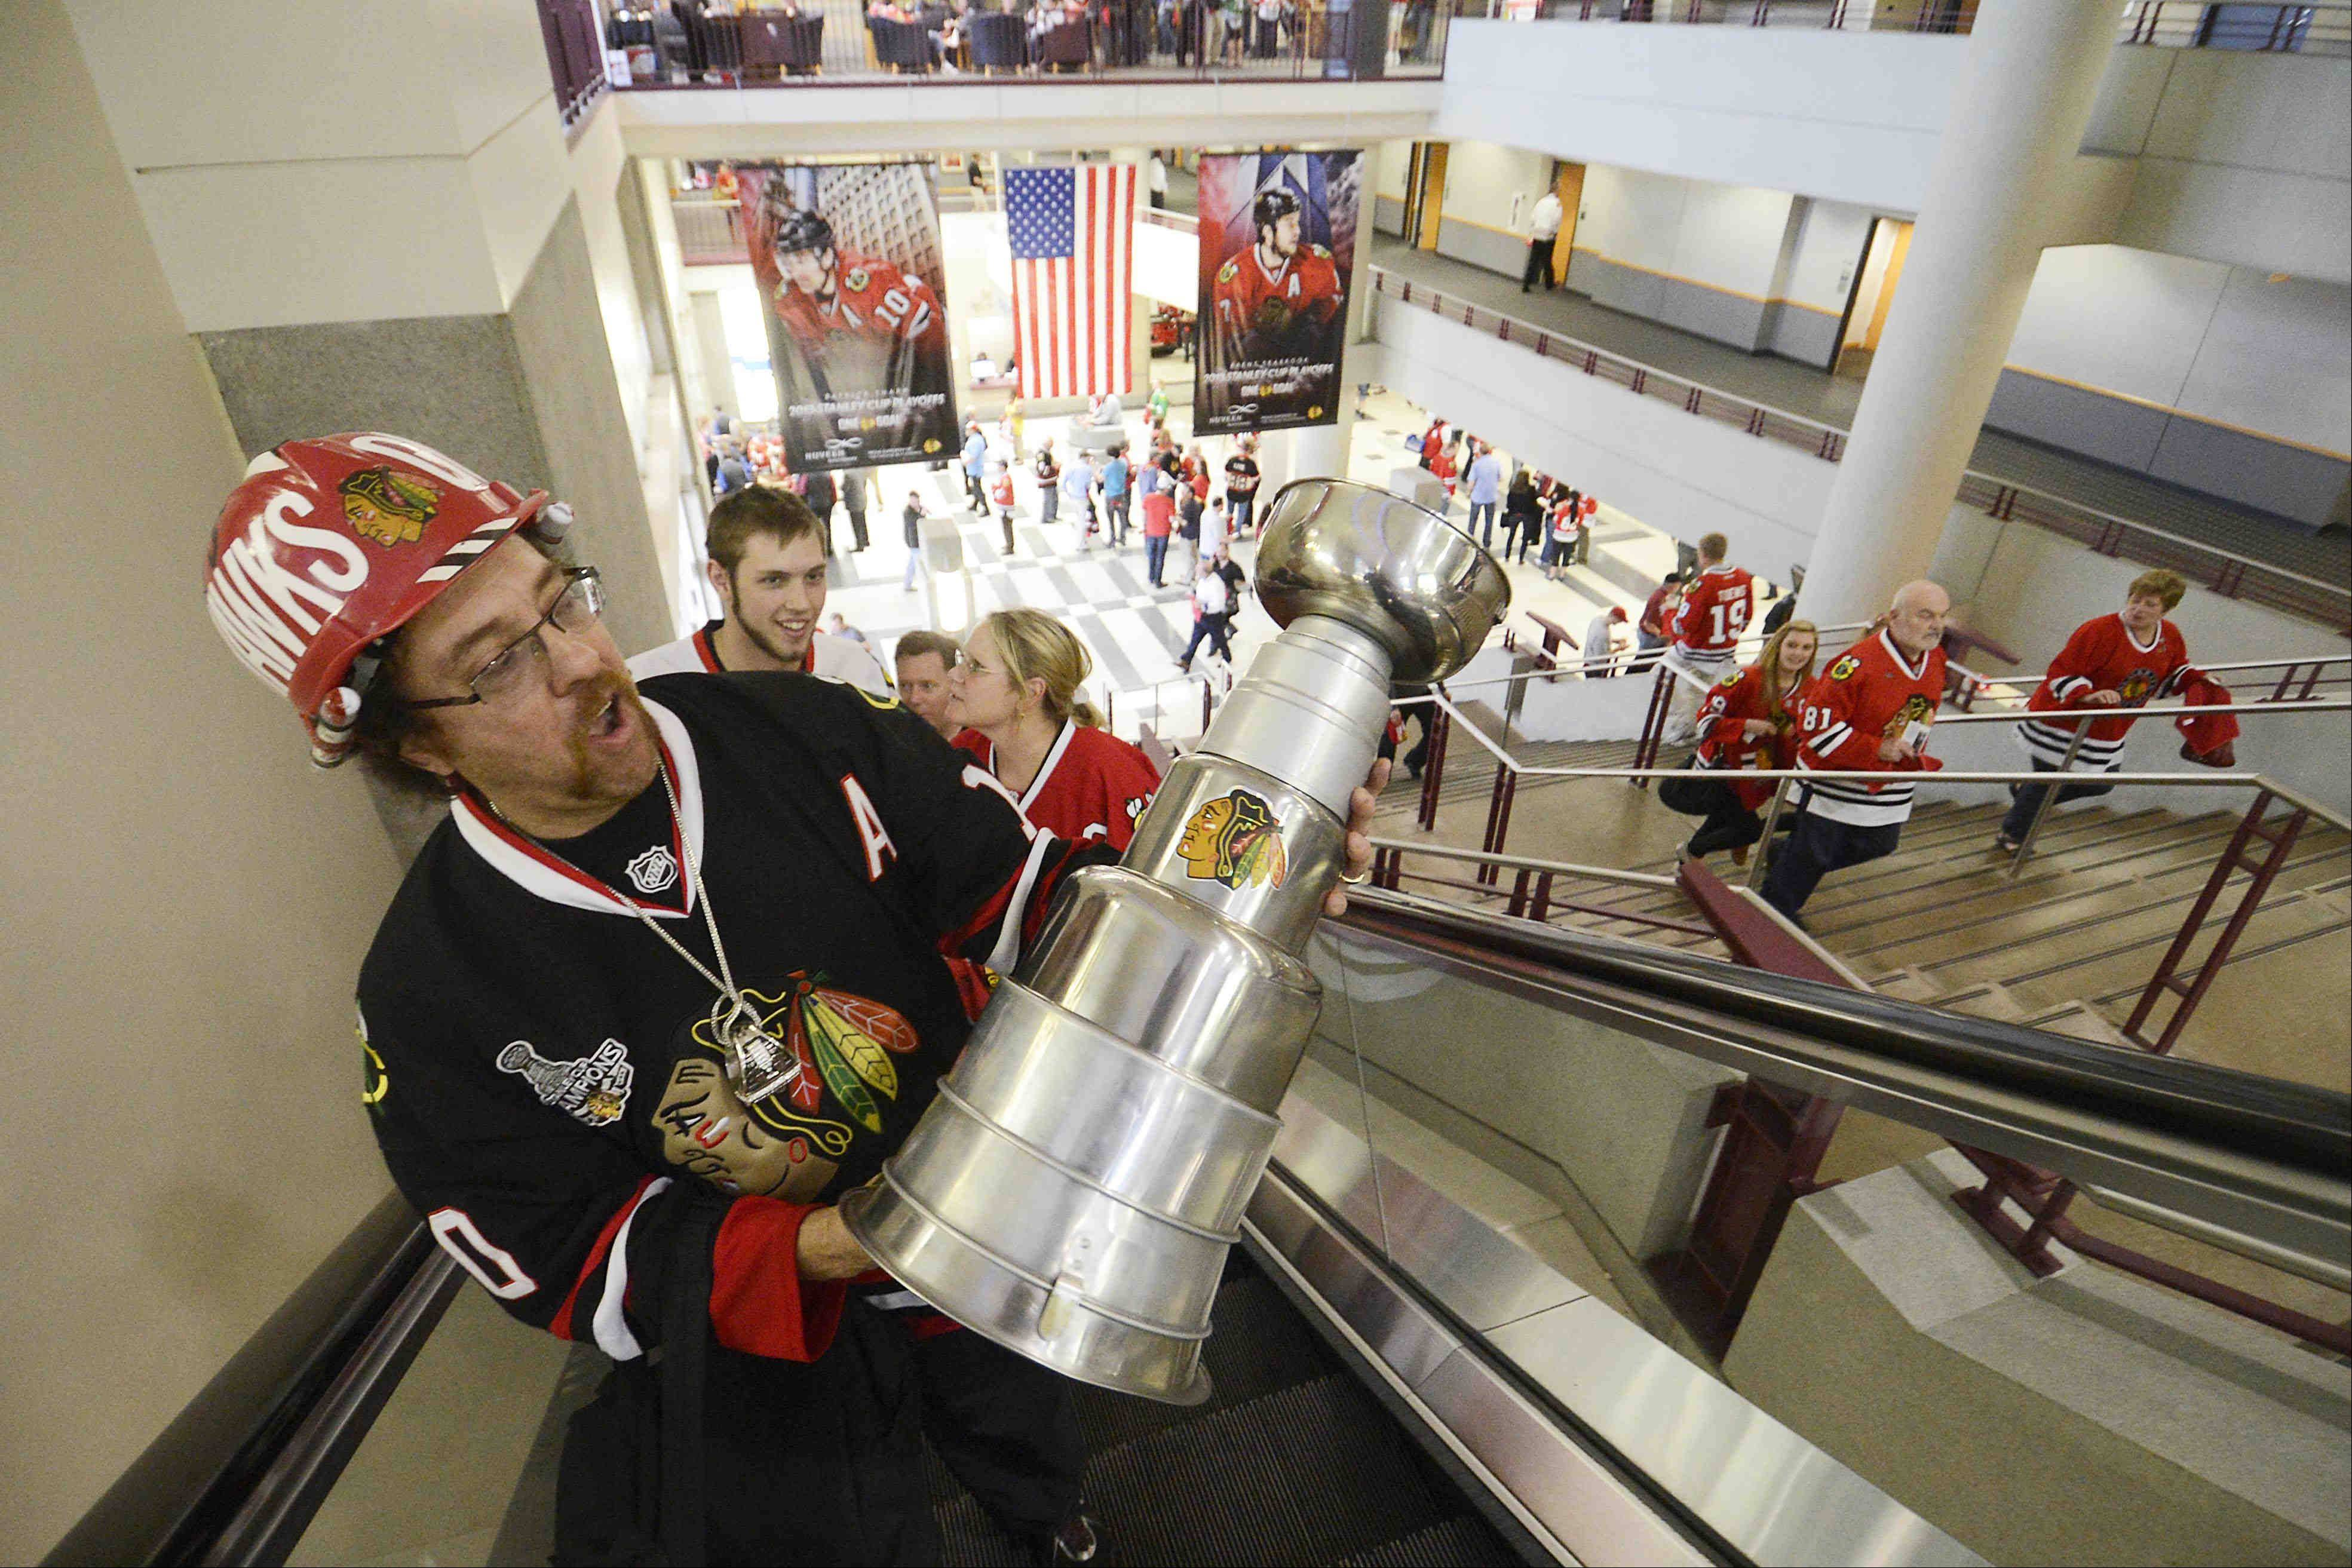 Ray Alcala Jr. of Lockport, carries his homemade Stanley Cup up the escalator. He made the trophy out of kitchen pots and dog dishes during the 2010 season.